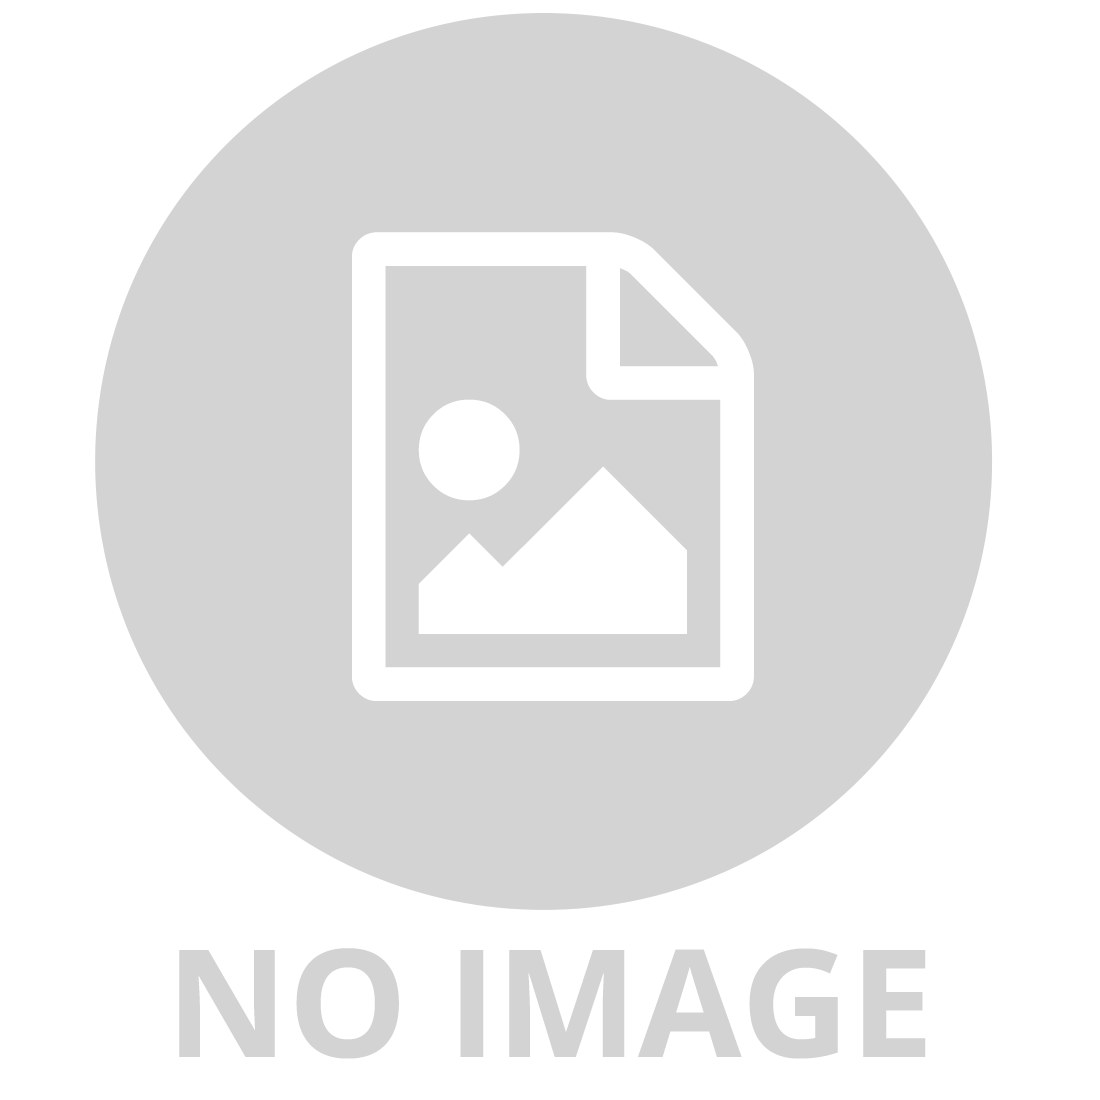 KIDS PROJECT CERAMIC BOWL MAKEOVERS